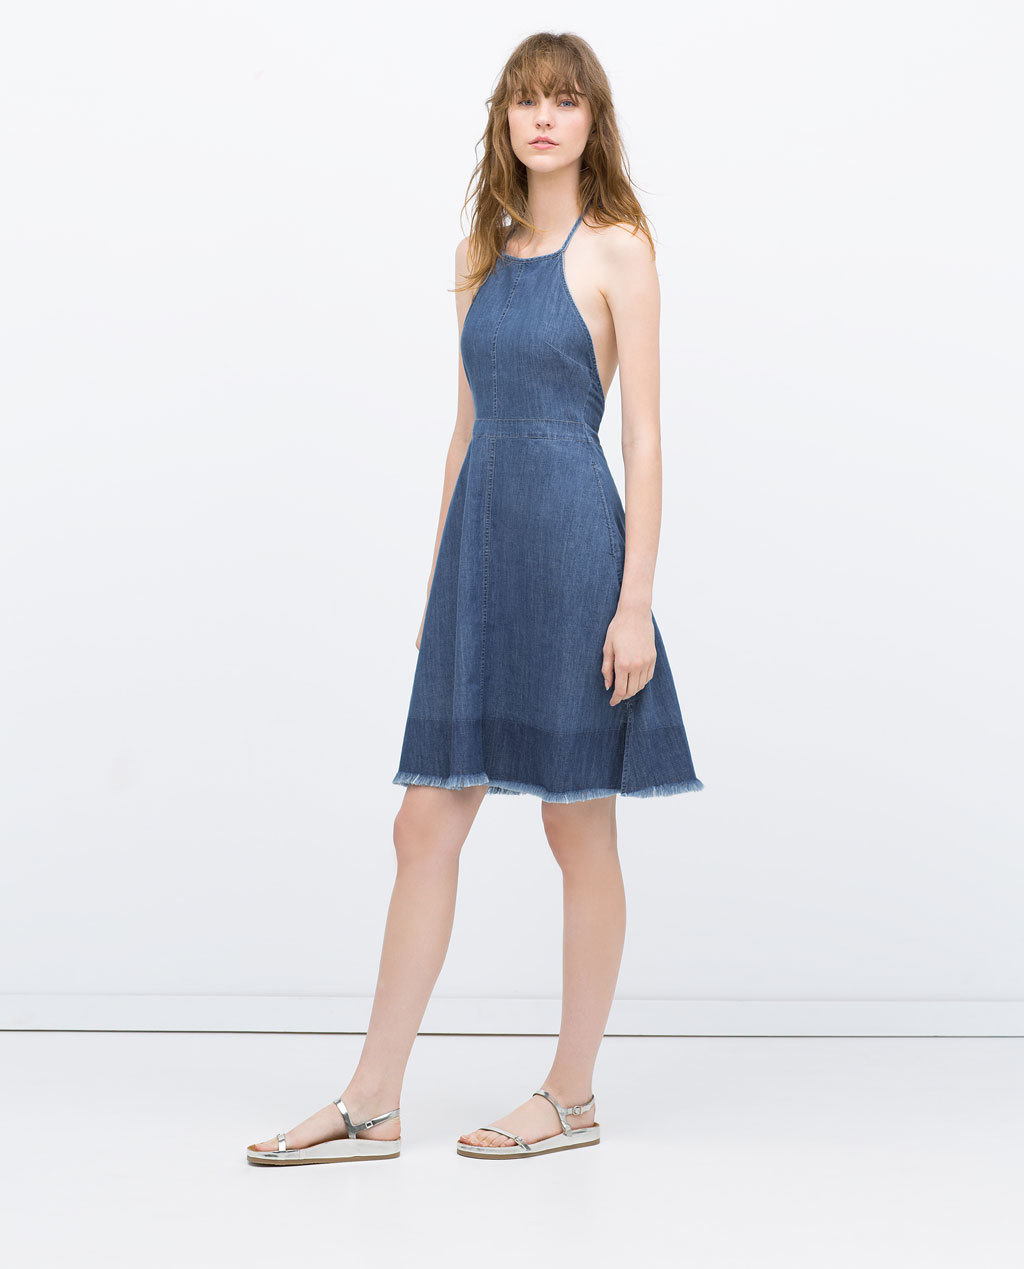 Halter Top Dress With Frayed Hem - sleeve style: spaghetti straps; pattern: plain; predominant colour: denim; occasions: casual, holiday; length: just above the knee; fit: fitted at waist & bust; style: fit & flare; fibres: cotton - 100%; sleeve length: sleeveless; texture group: denim; neckline: medium square neck; pattern type: fabric; season: s/s 2015; wardrobe: basic